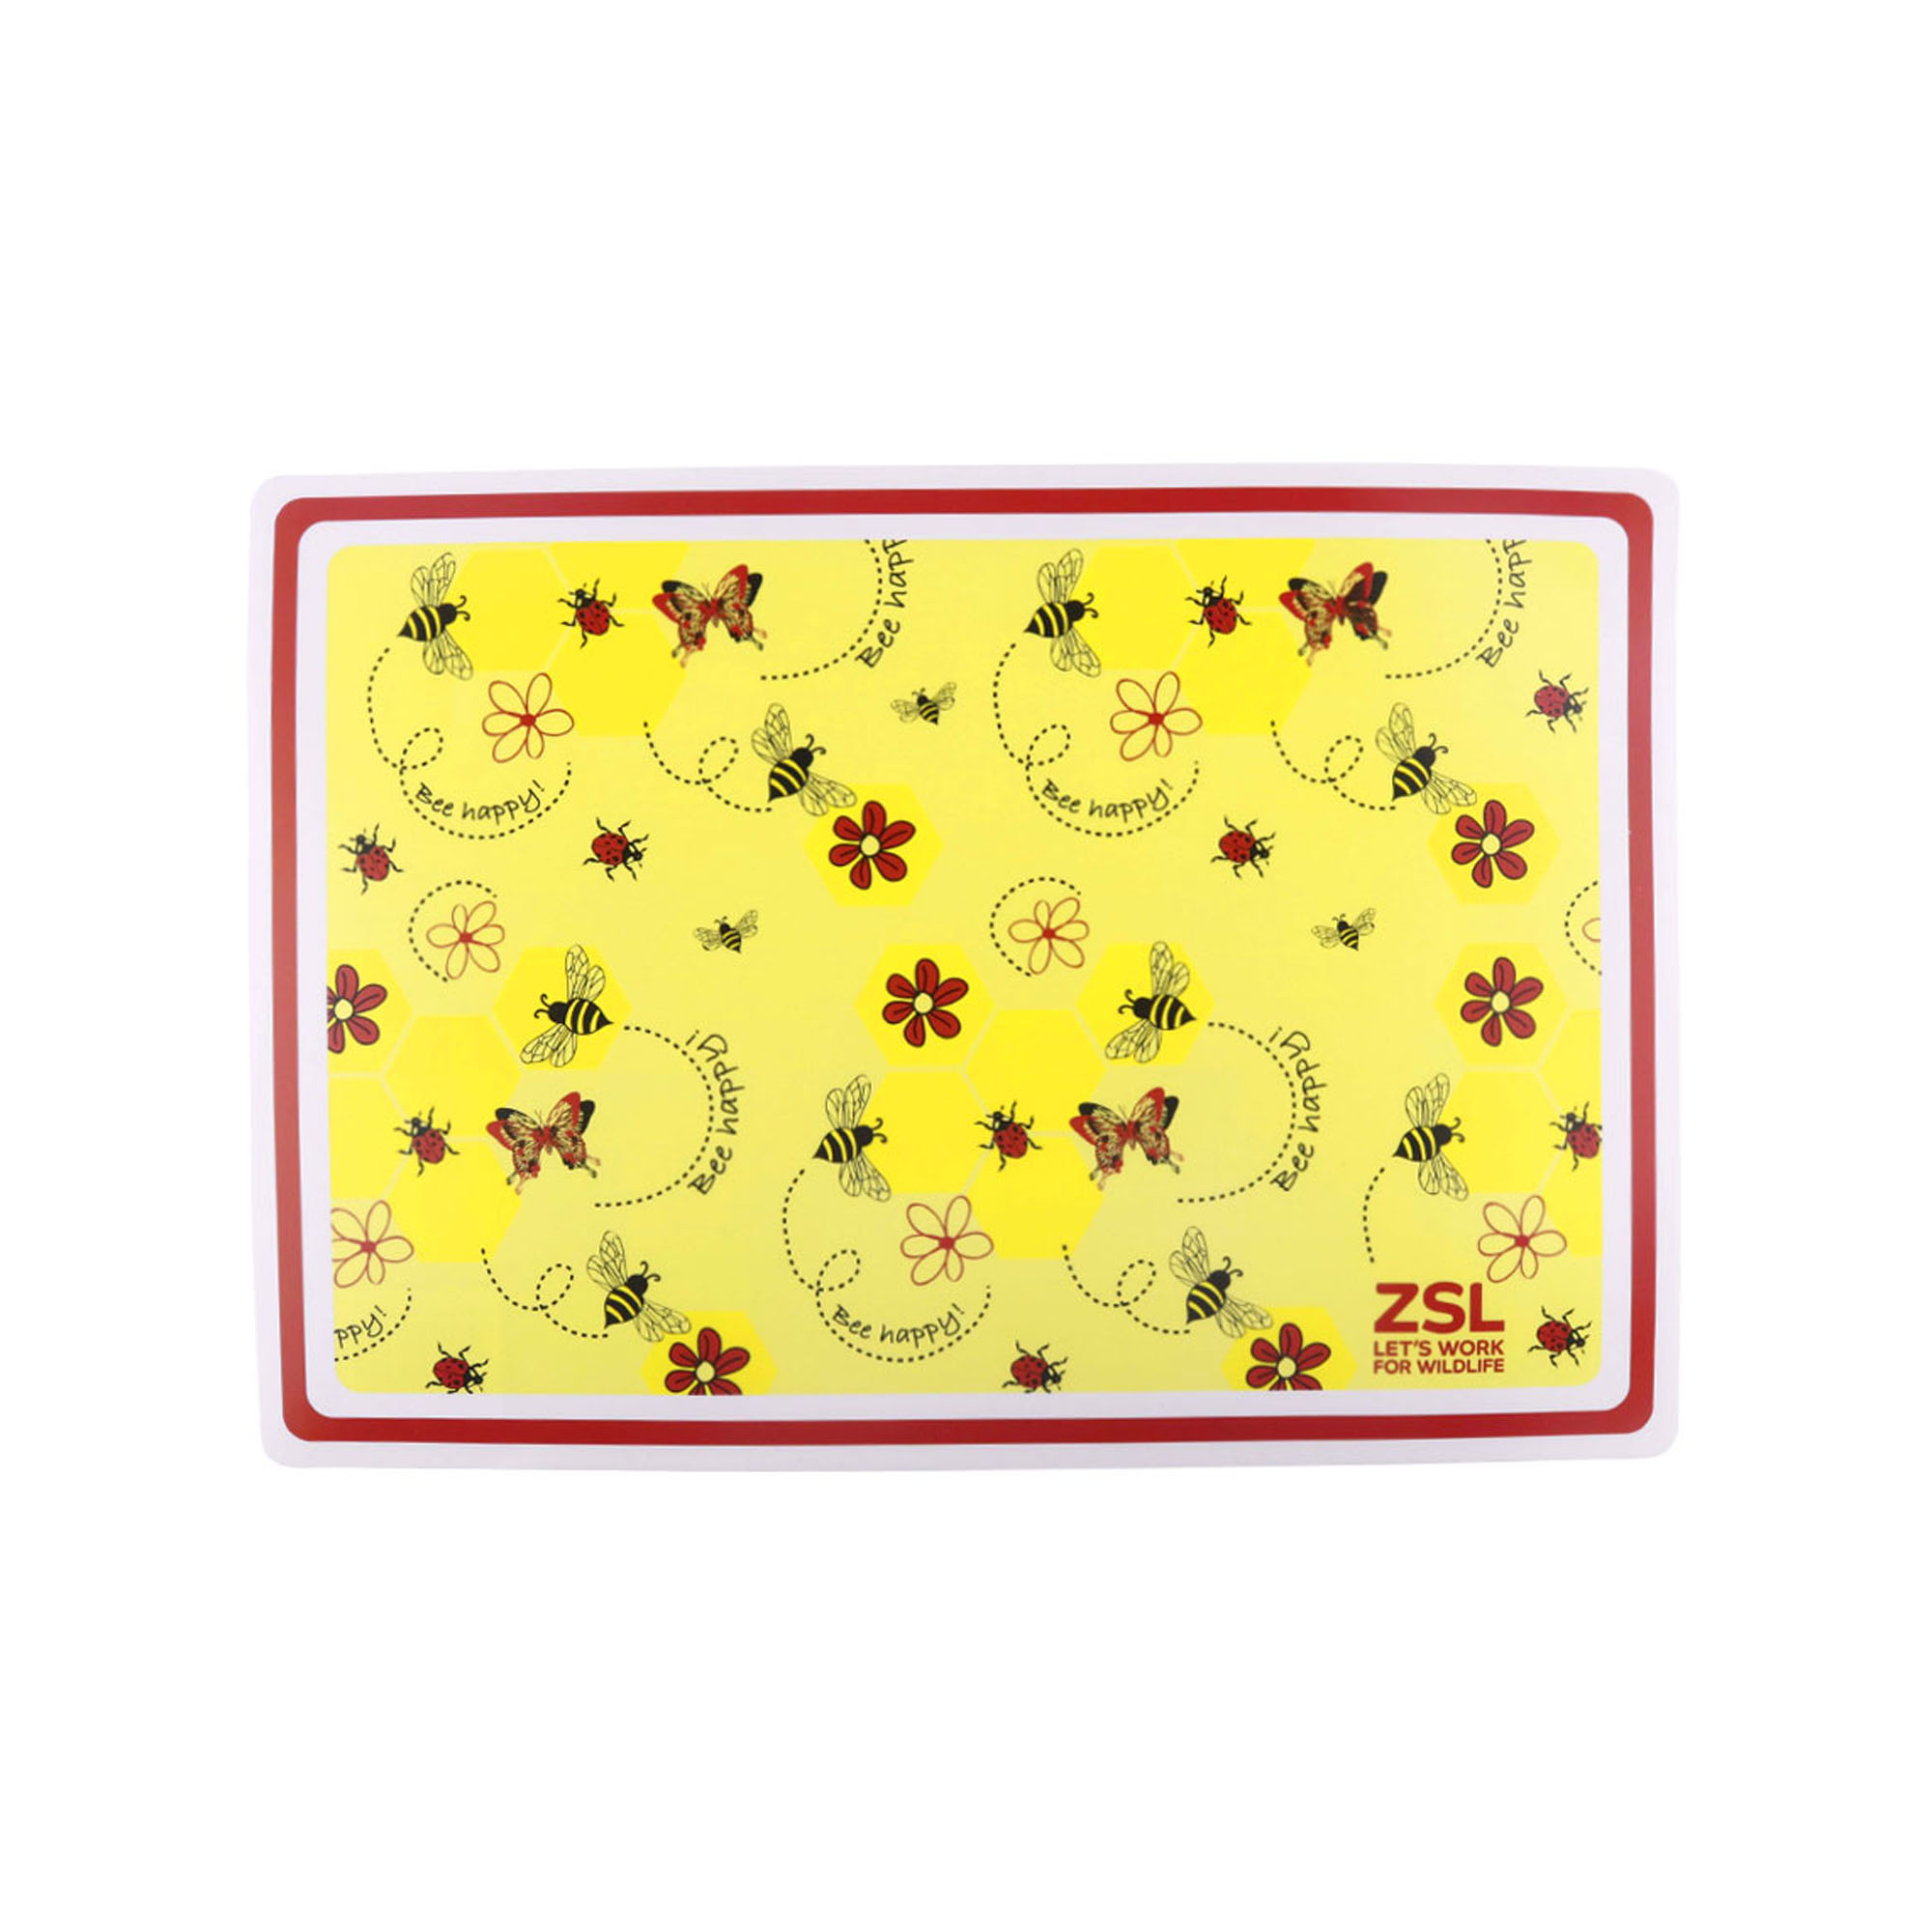 'Bee happy' placemat